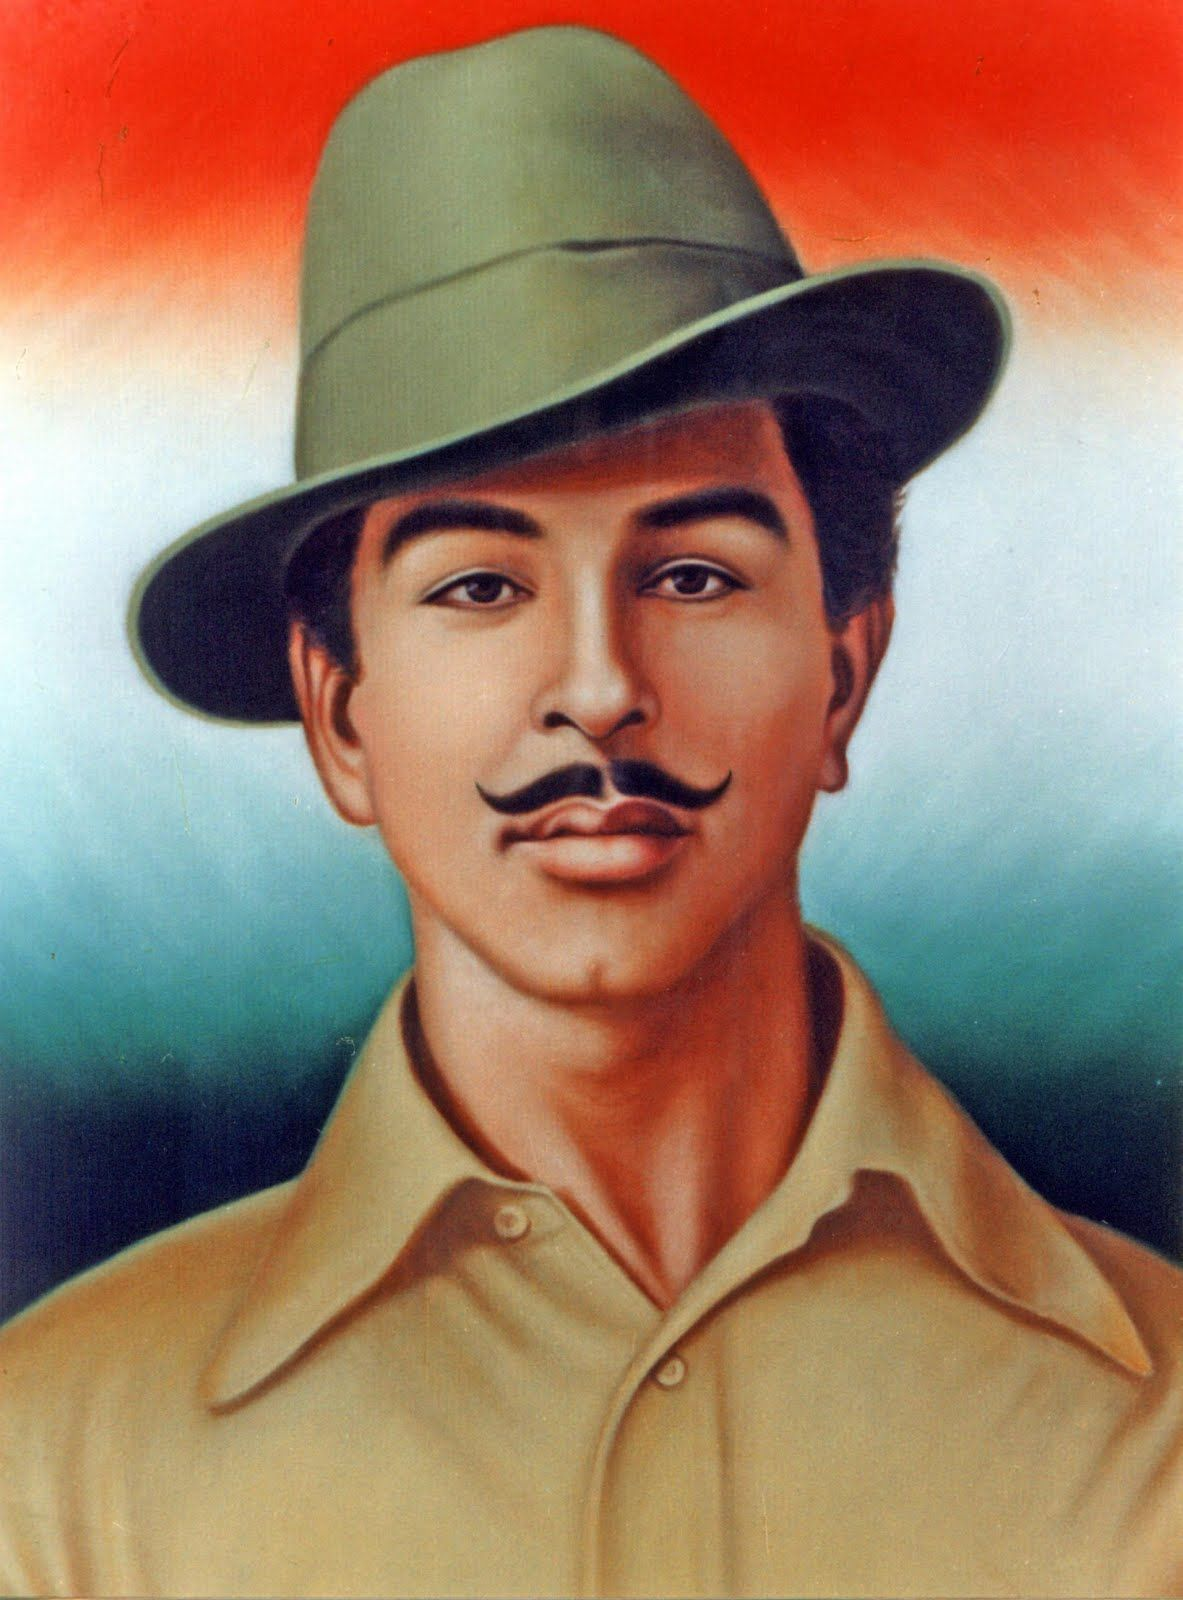 Shaheed Bhagat Singh HD Images & Photos Free Download 2020